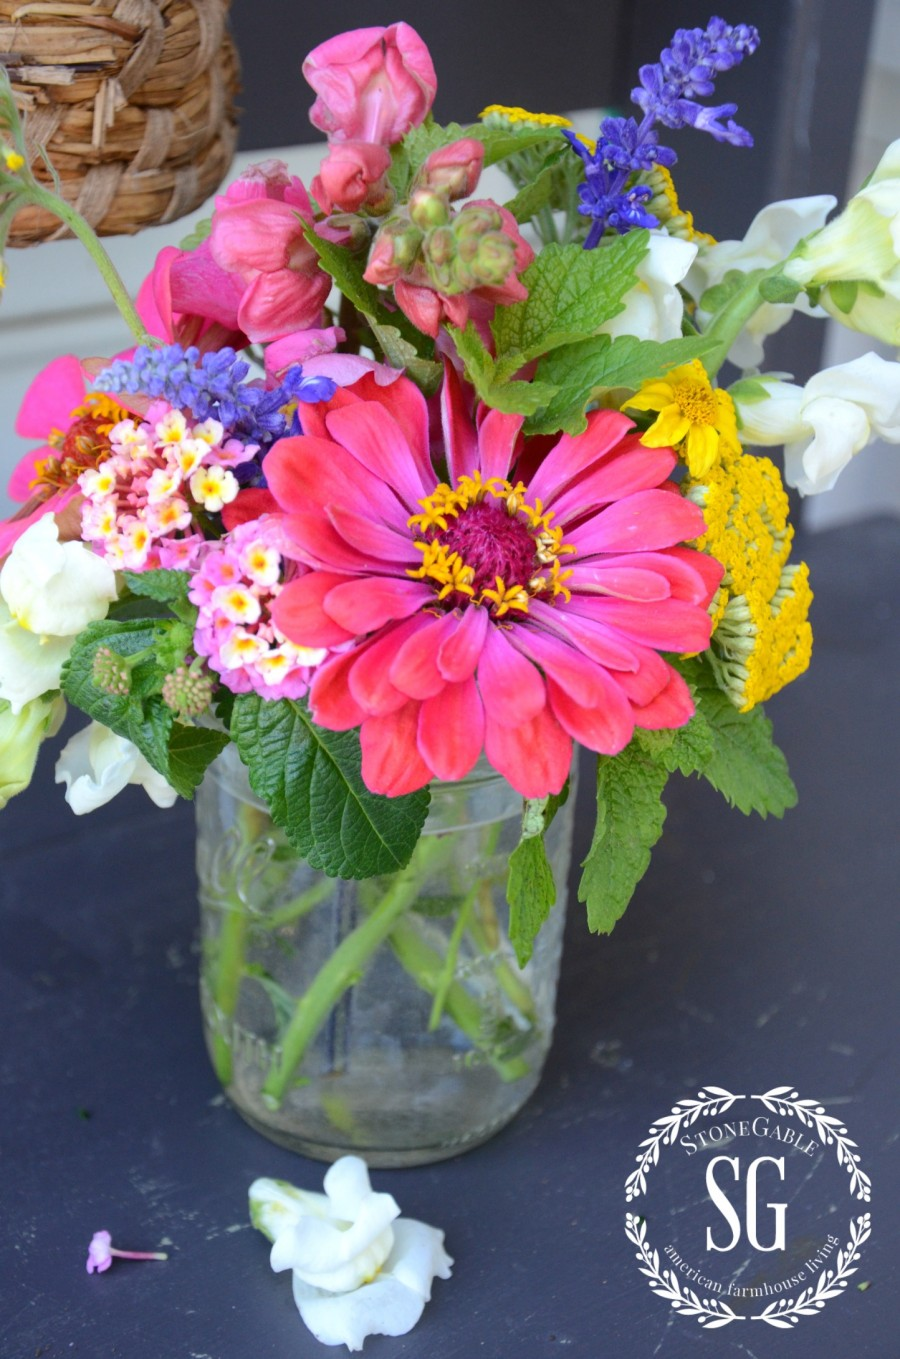 TIPS FOR ARRANGING GARDEN FLOWERS-spray cut flowers with hairspray-stonegableblog.com